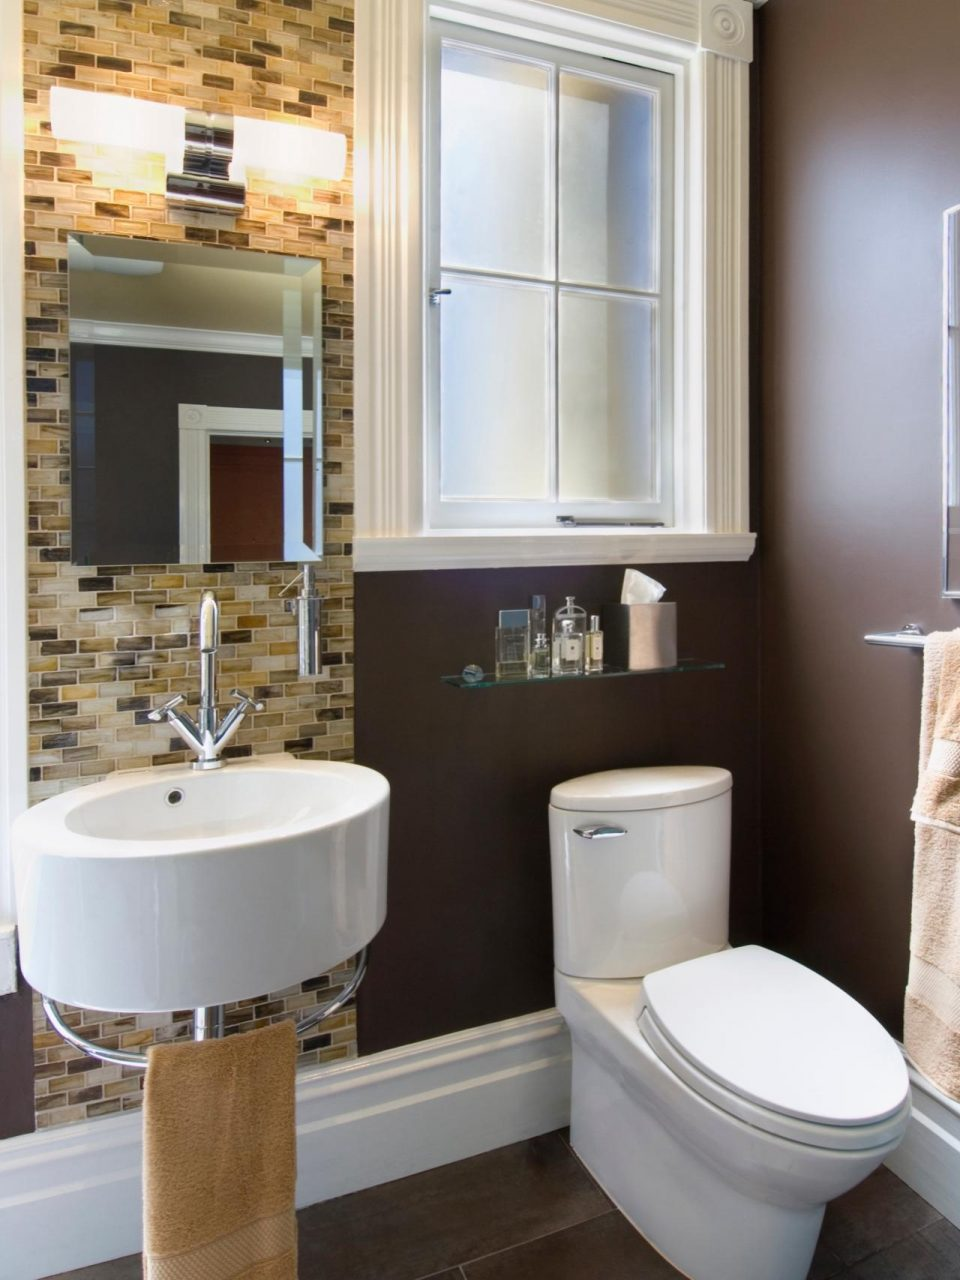 Bathroom Remodel Ideas Small Space Placement Furniture Really